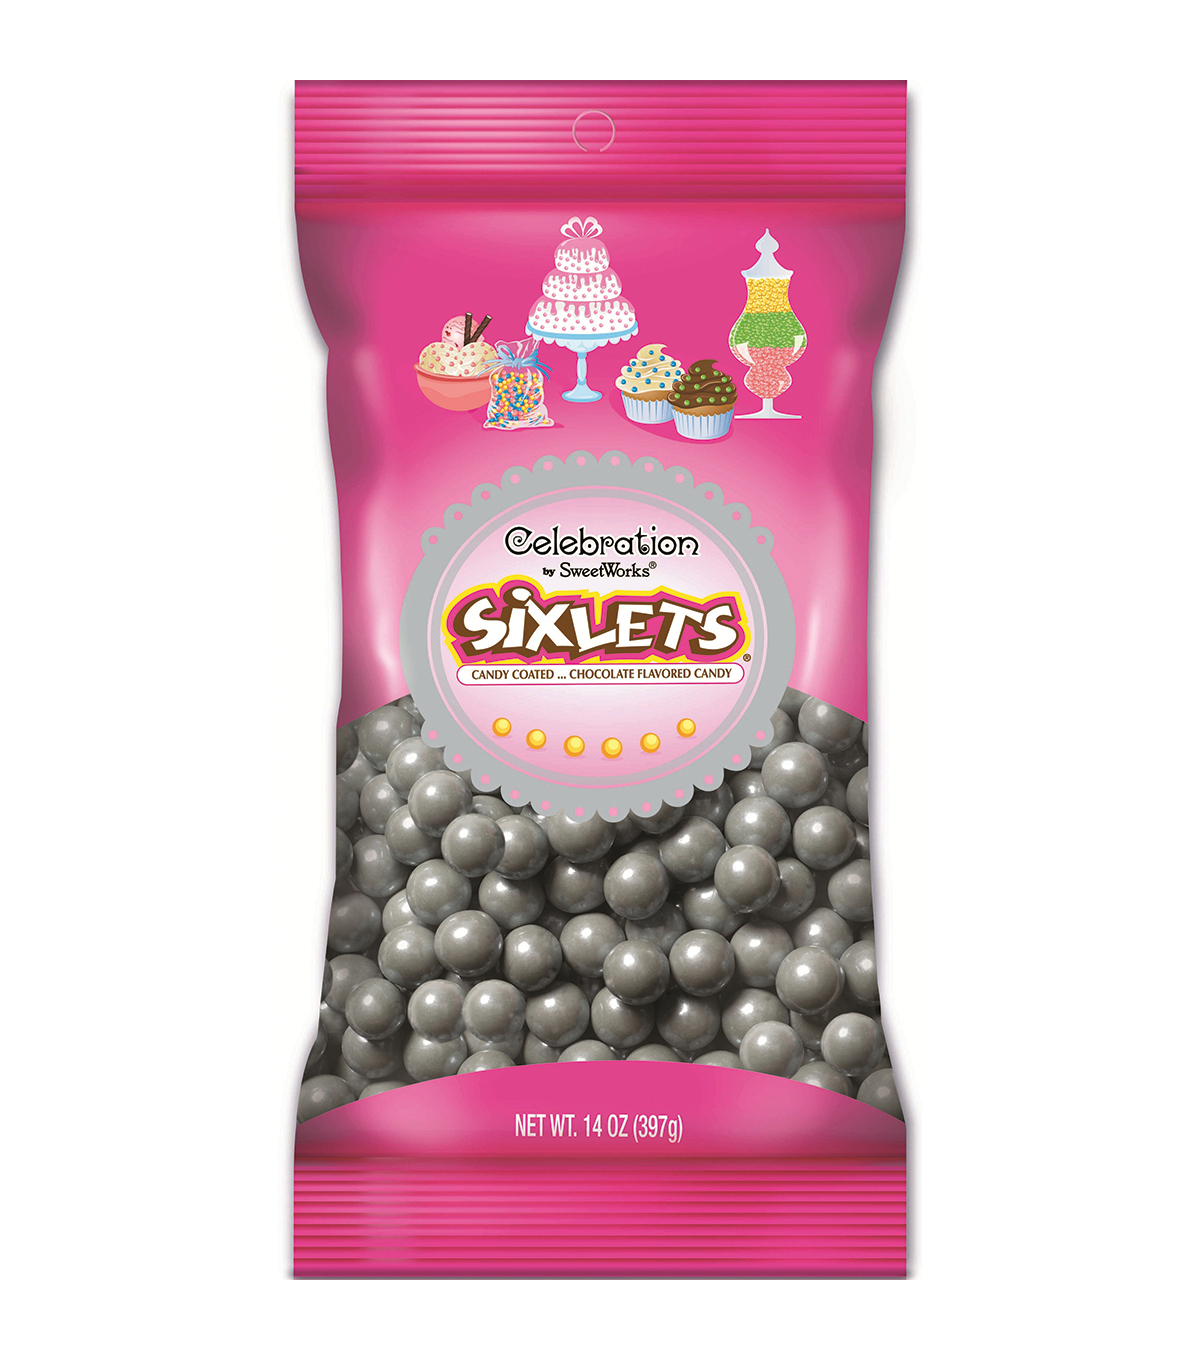 Celebrations By Sweetworks Candy Sixlets14oz Bag